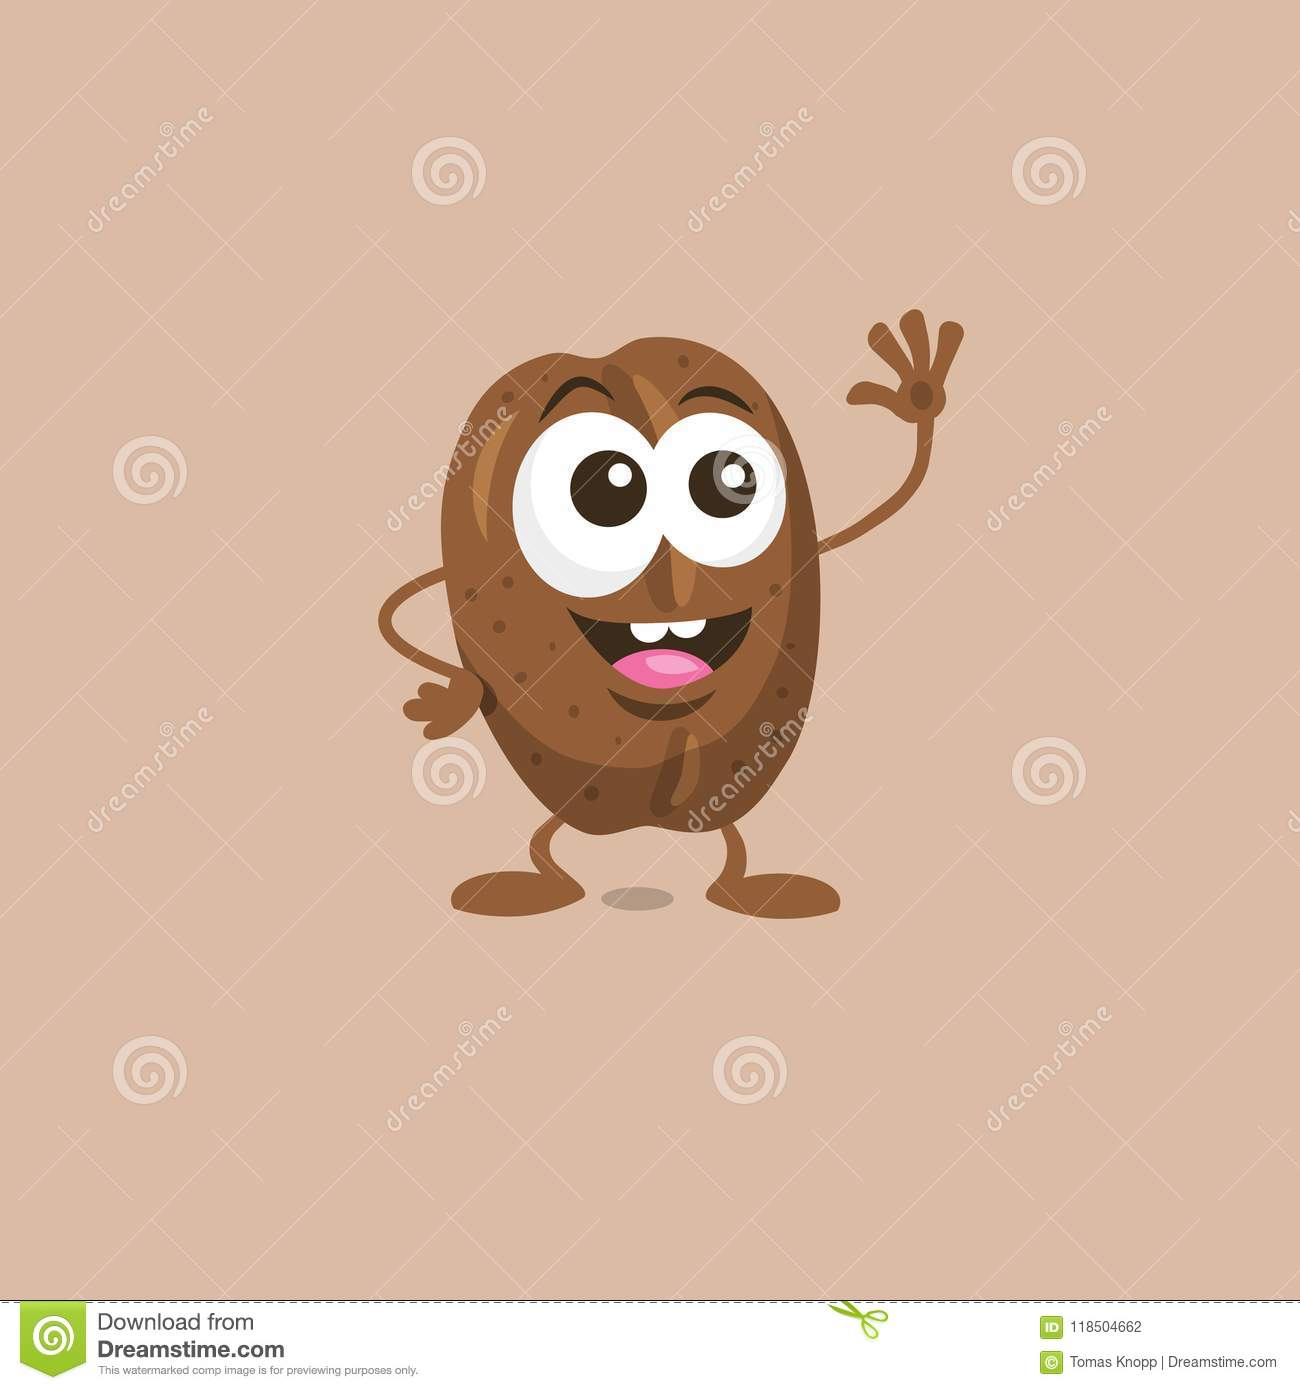 Download Cute Happy Coffee Bean Mascot Greeting Someone With Big Smile Stock Illustration